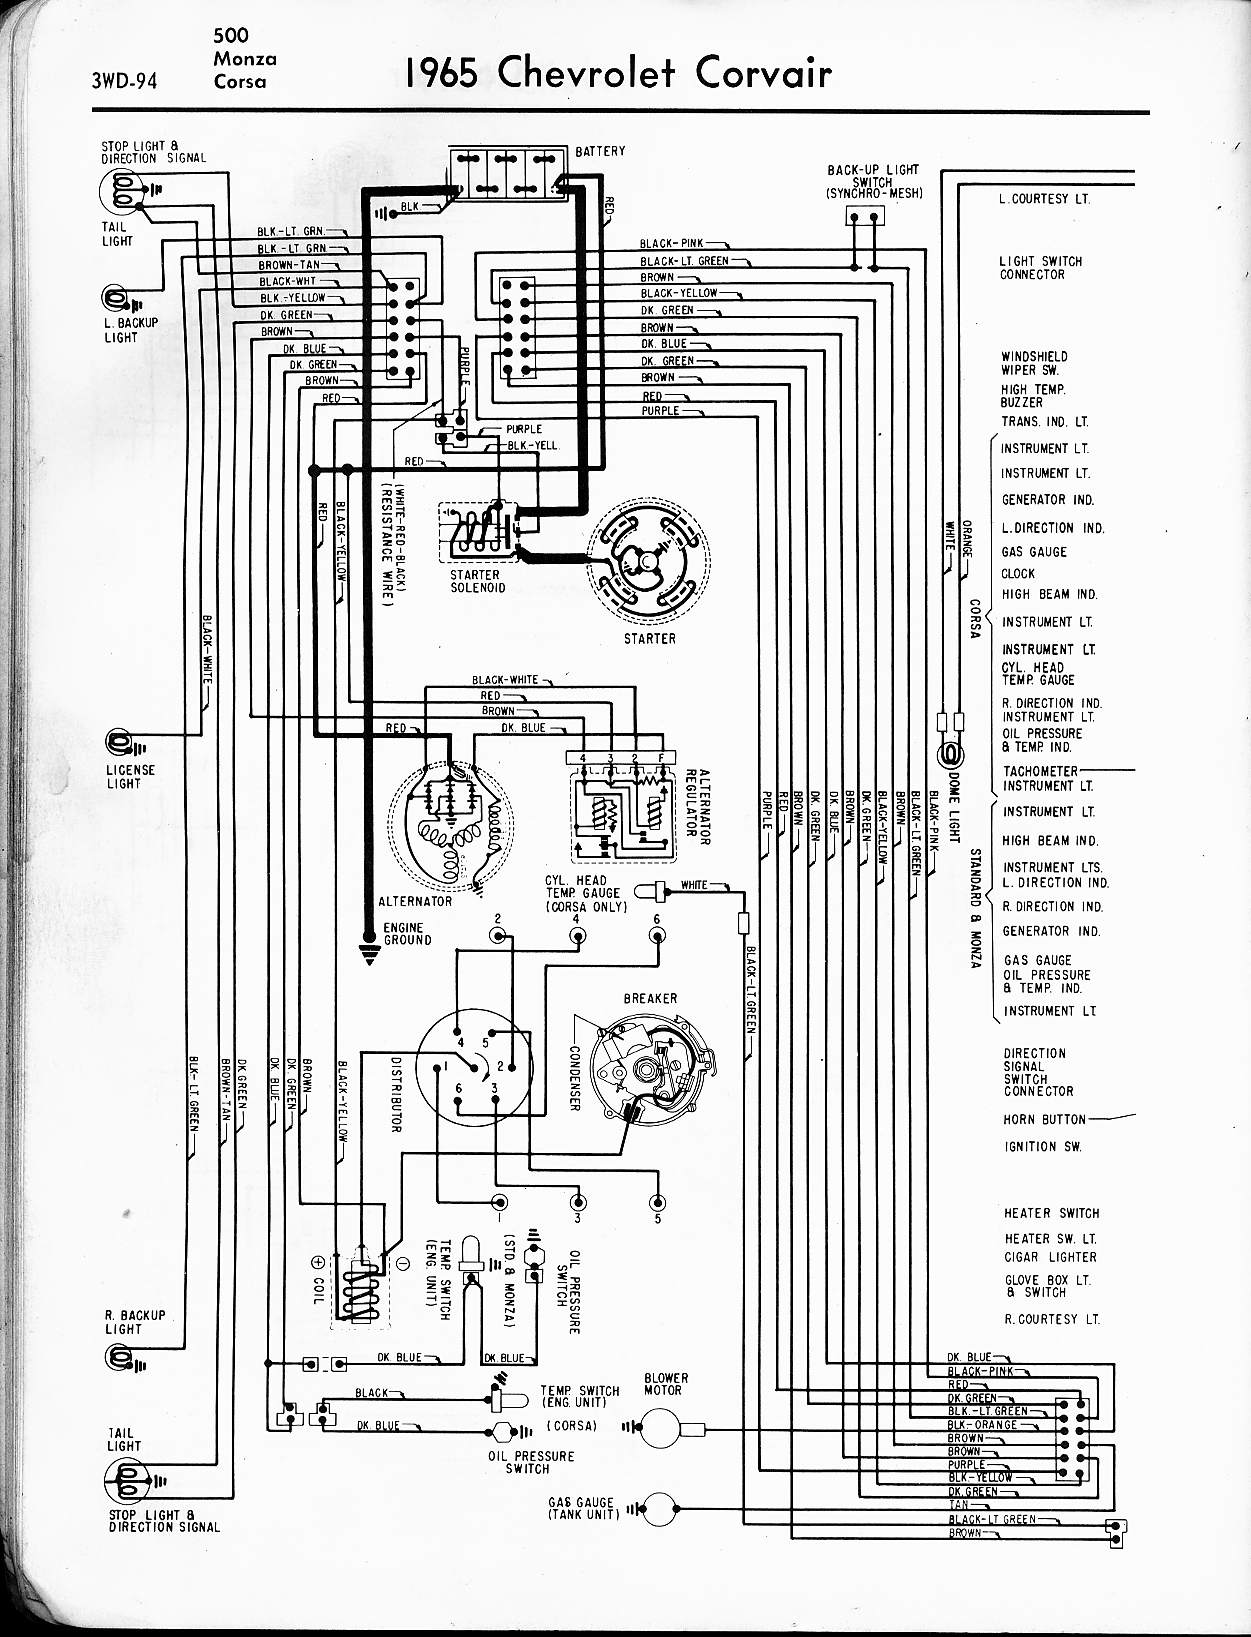 chevy wiring diagrams 1965 corvair 500 monza corsa right